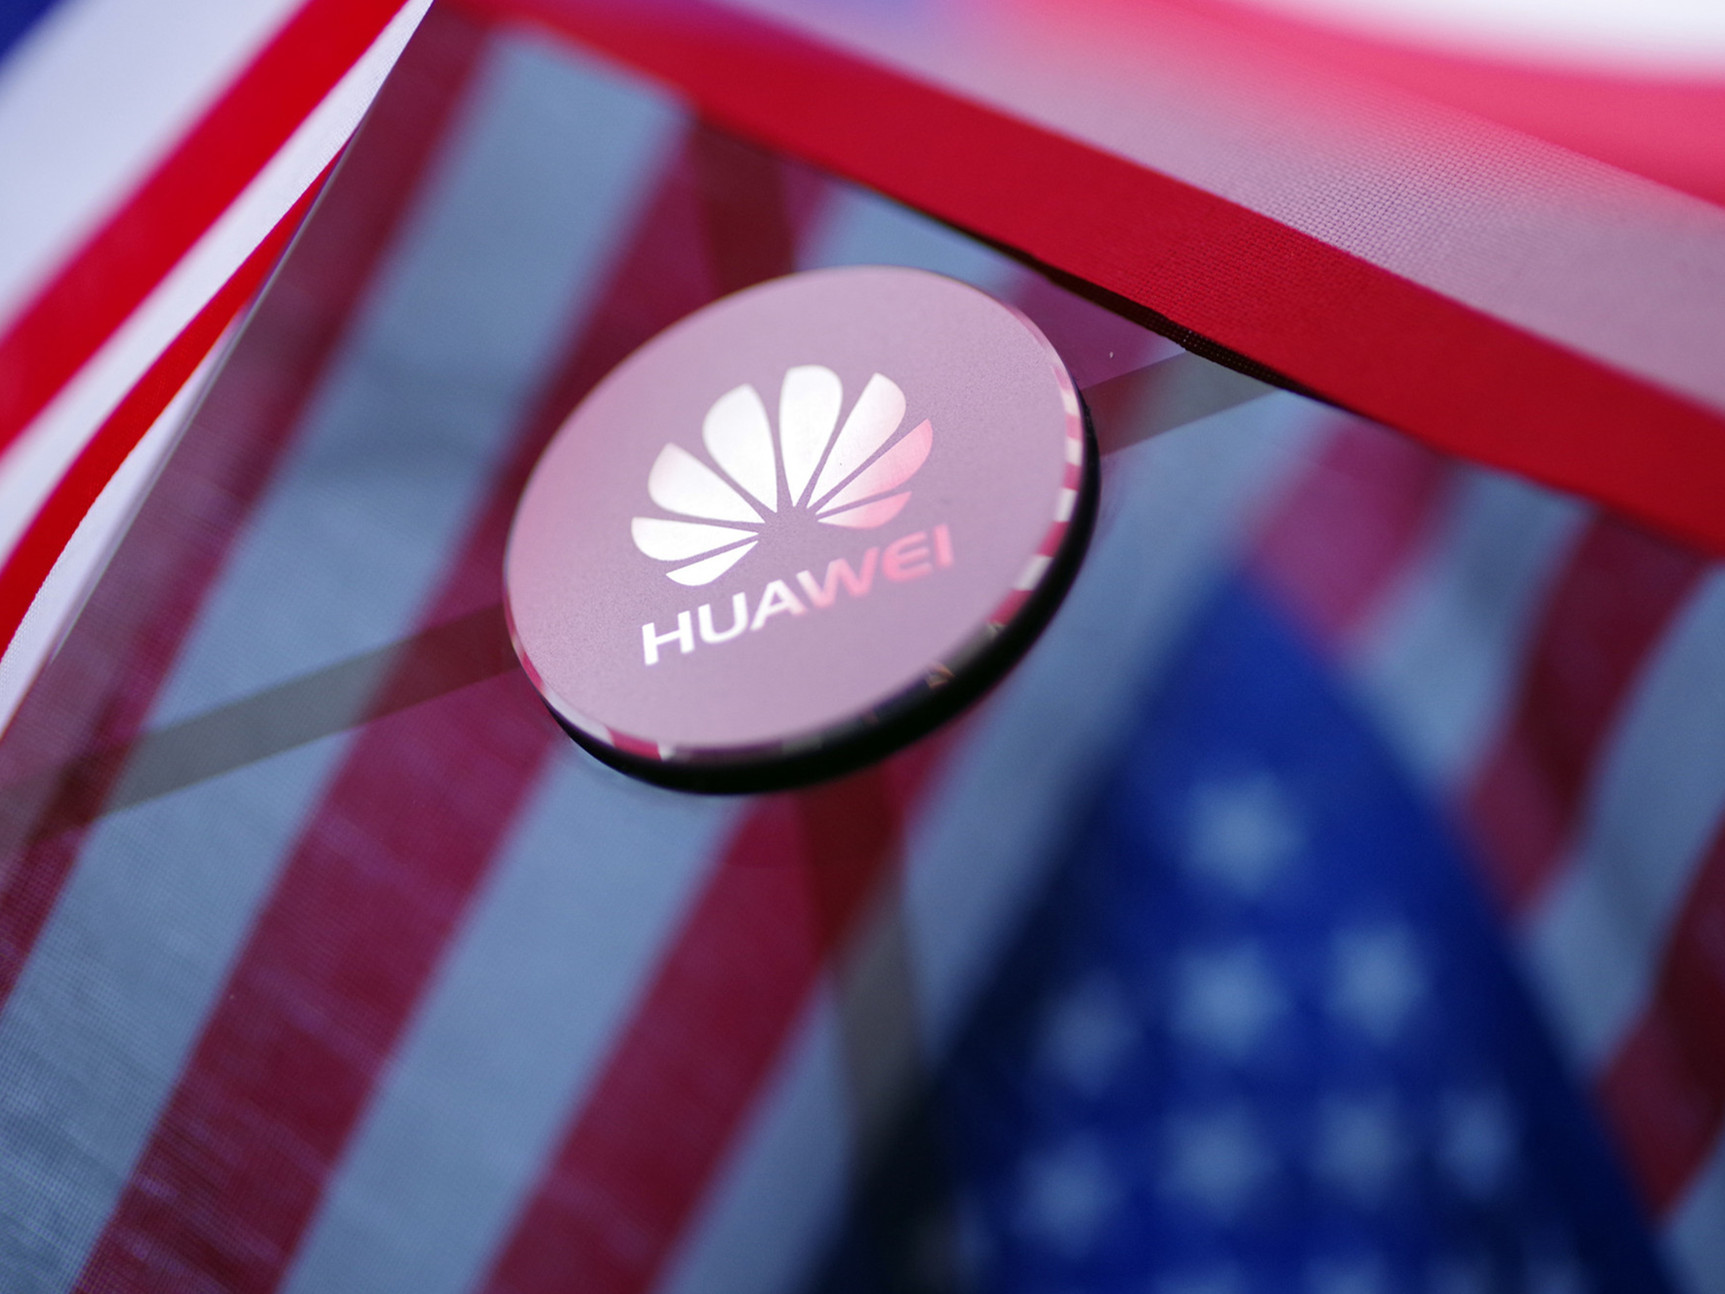 In-depth: US move against Huawei disrupts global supply chain